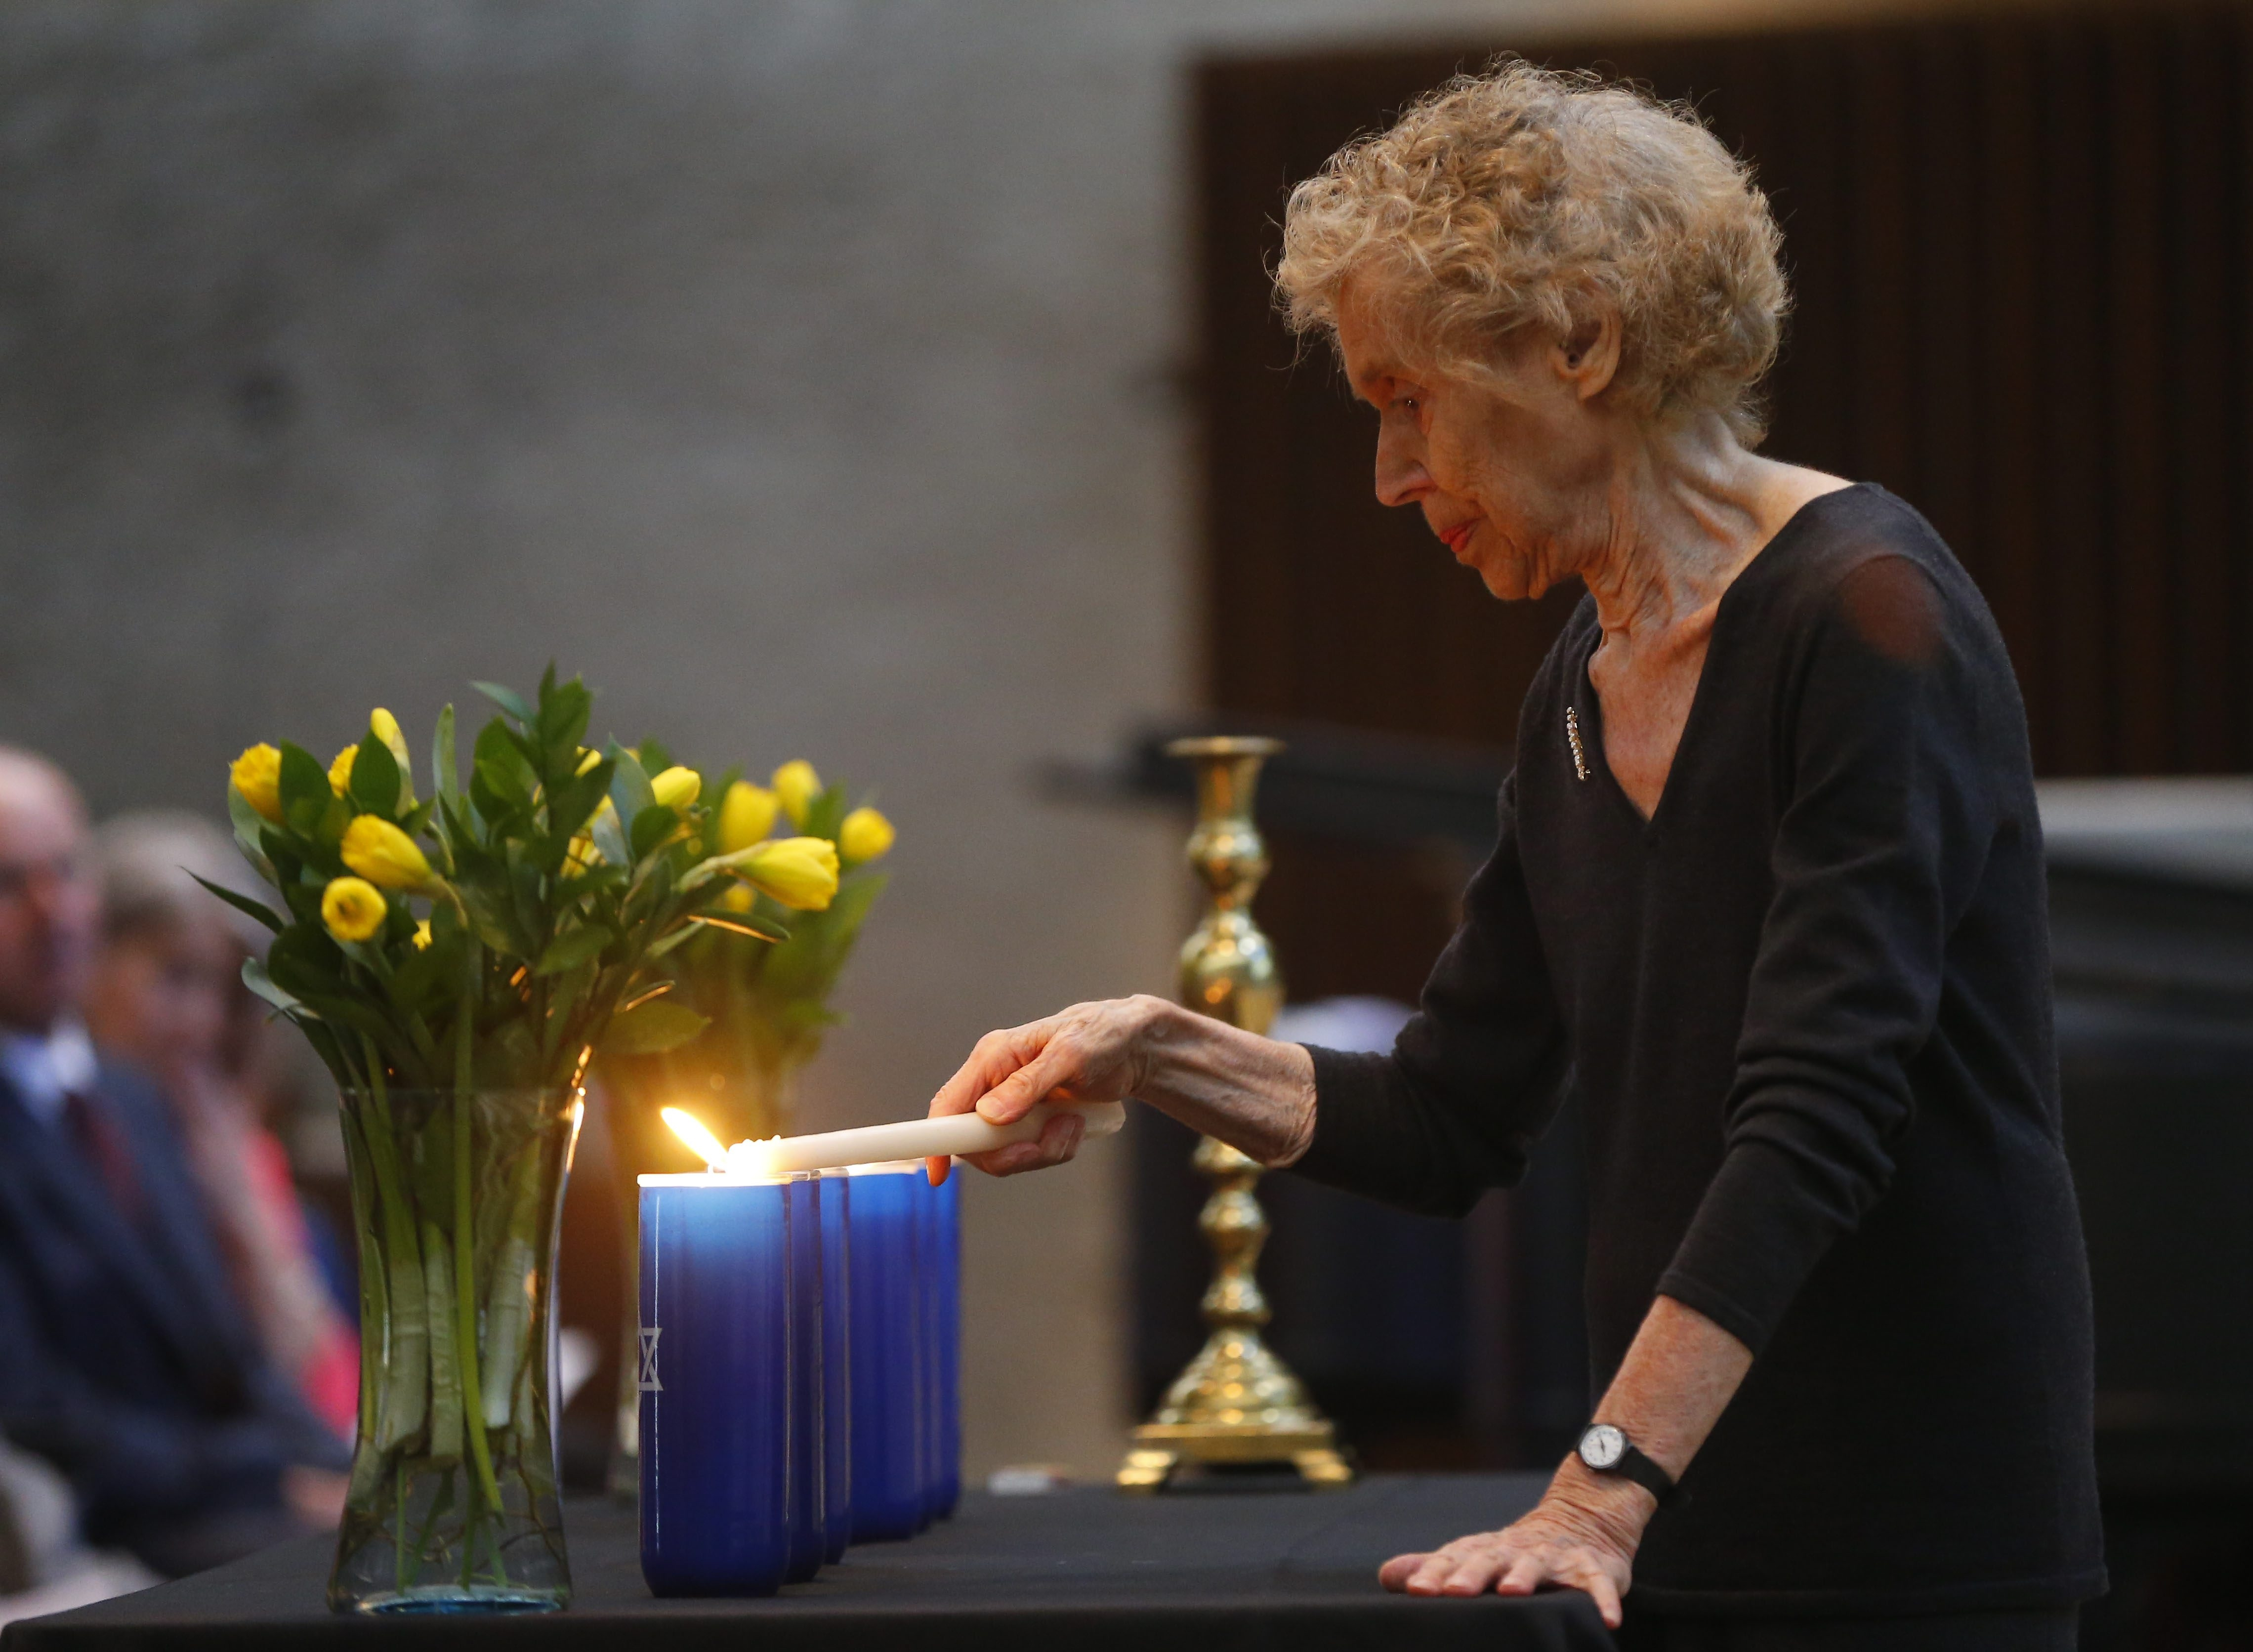 Holocaust survivor Sophia Veffer lights a remembrance candle at Temple Beth Zion on Sunday.